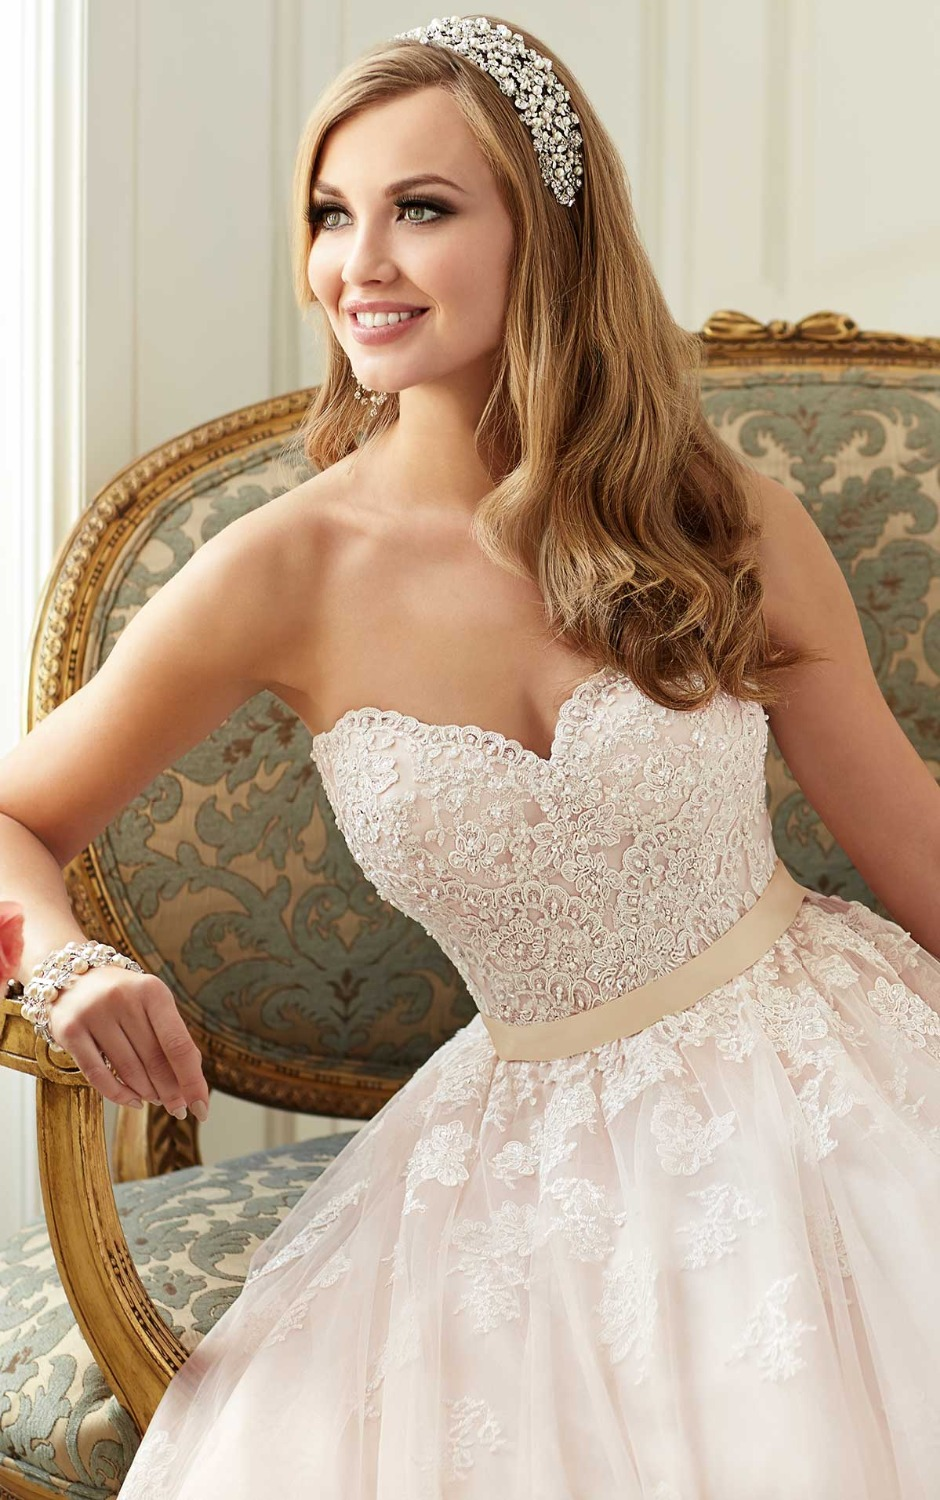 0e15e13f481 Princess Ball Gown Sweetheart Strapless Bridal Gown Romantic Lace Tulle  Light Pink Wedding Dress With Grosgrain Ribbon 2015-in Wedding Dresses from  Weddings ...